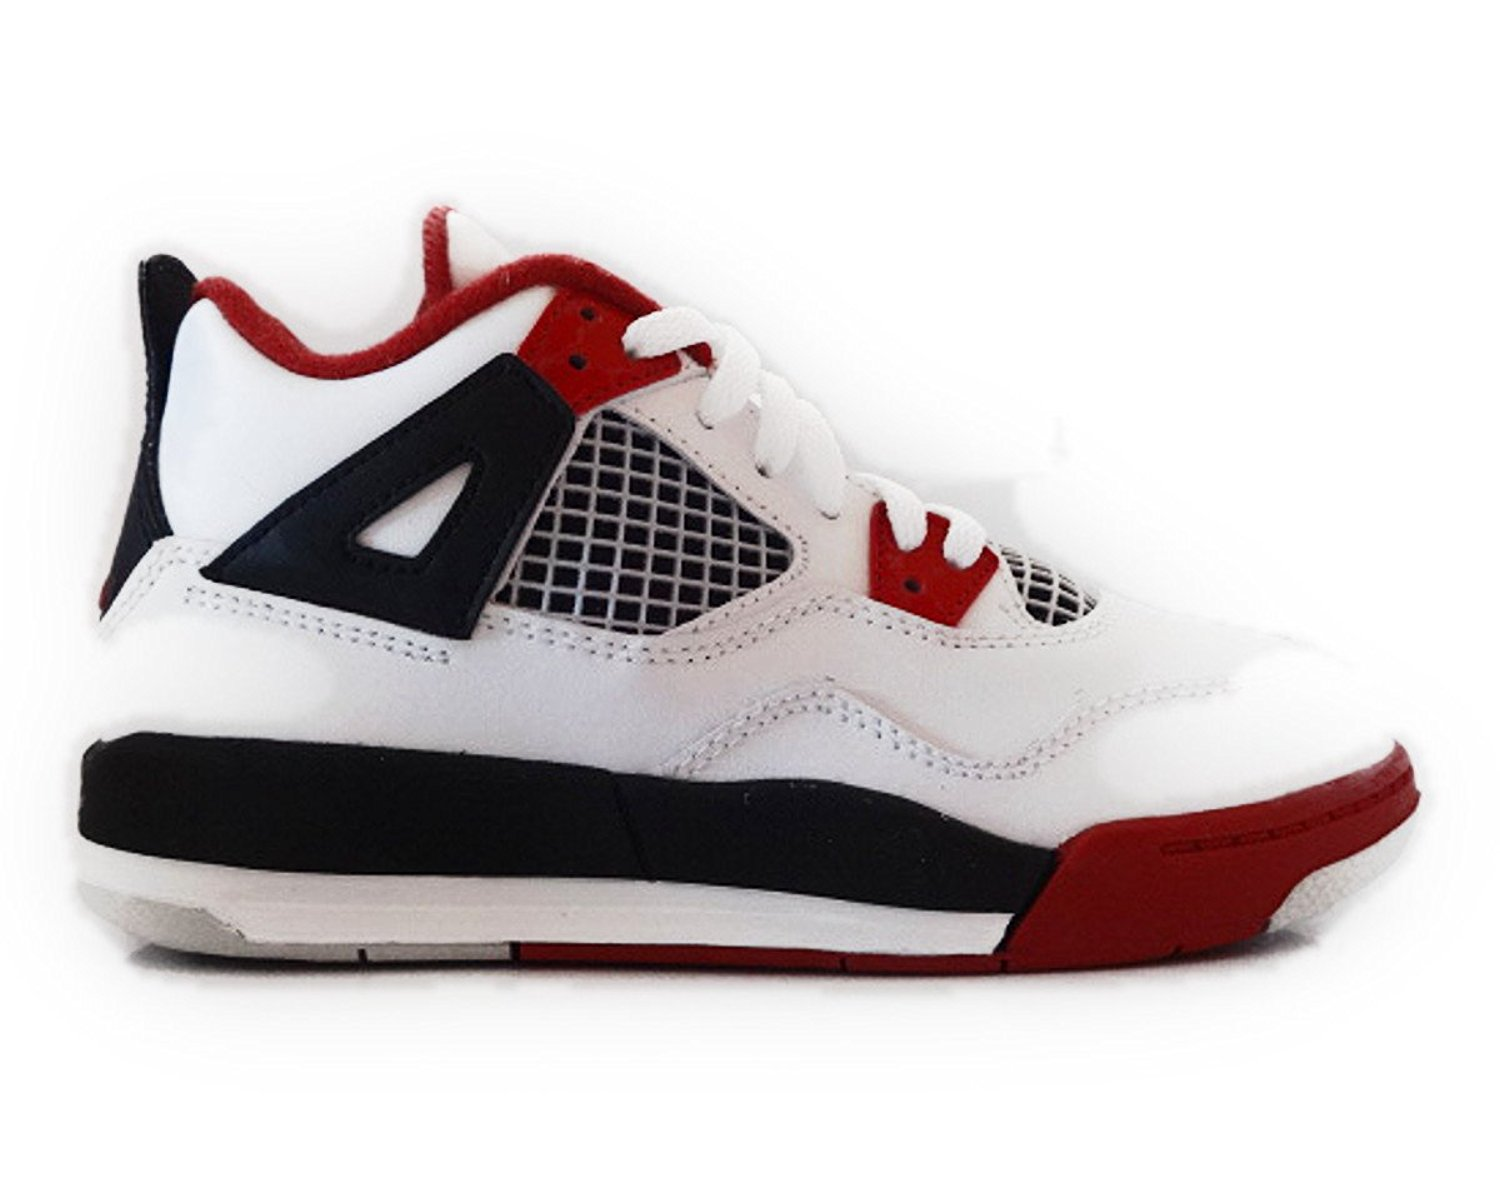 reputable site db131 06830 Get Quotations · Nike Air Jordan 4 Retro Little Kids (PS) Boys Basketball  Shoes 308499-110